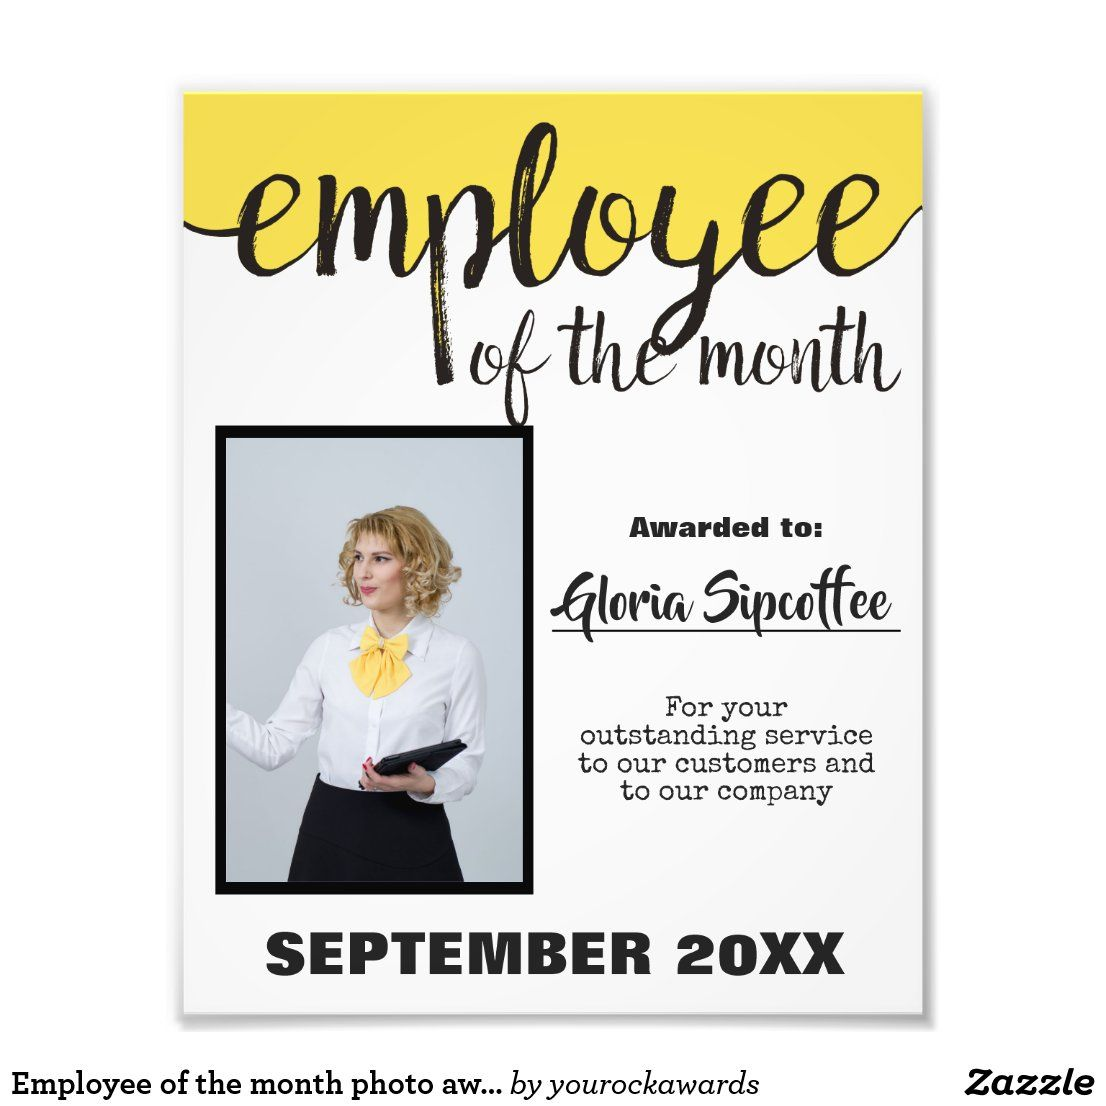 Employee Of The Month Photo Award Certificate Zazzle Com In 2021 Employee Awards Certificates Employee Recognition Board Employee Awards